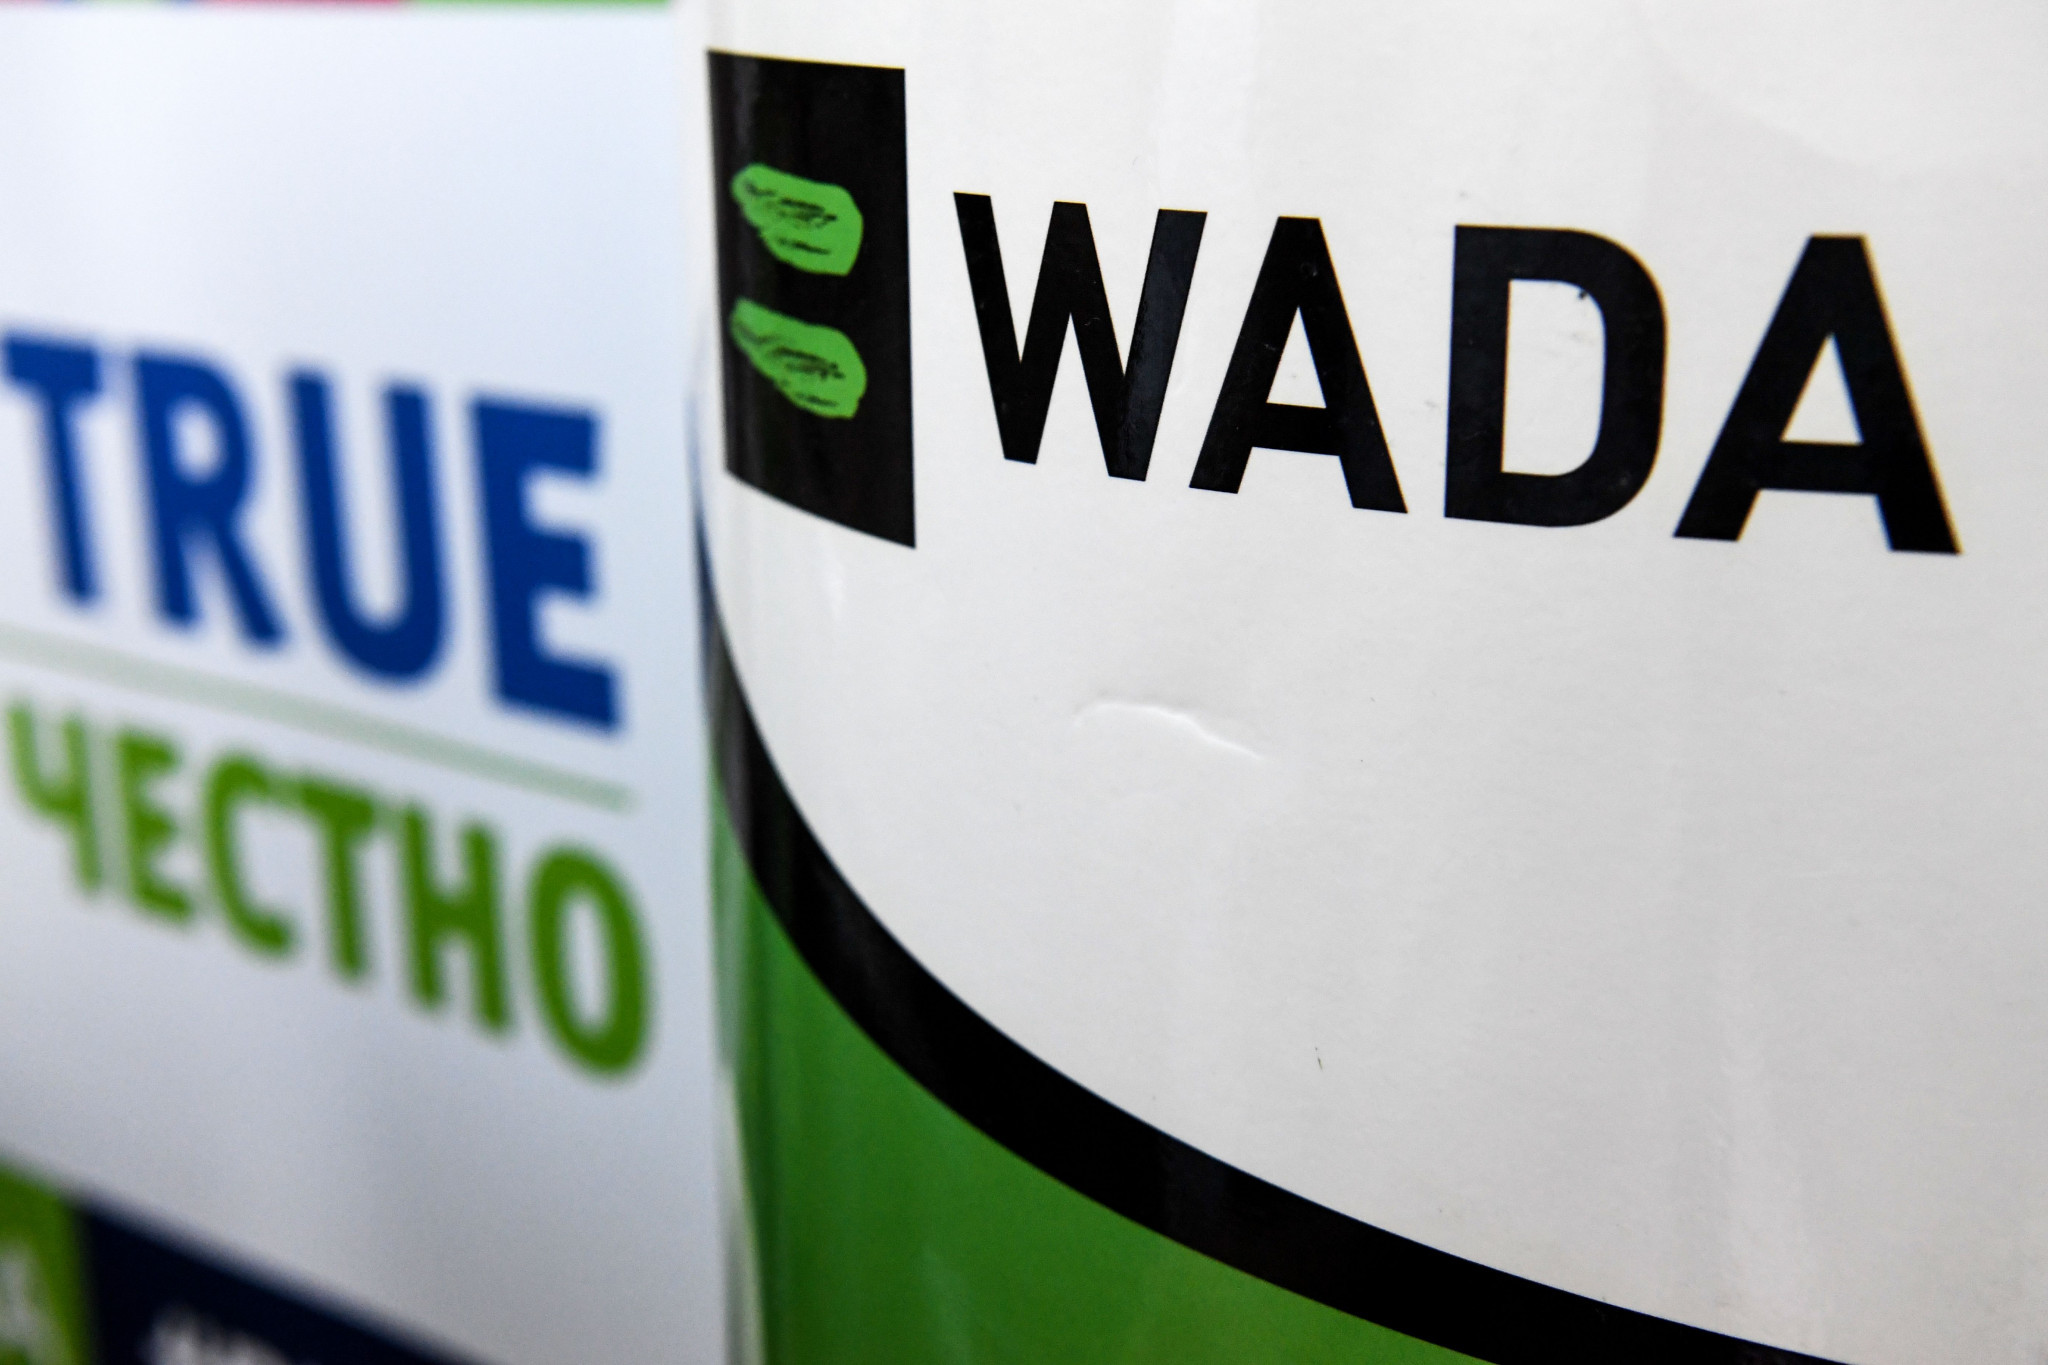 """Athlete groups call on WADA to implement """"stronger"""" reforms promoting independence and accountability"""